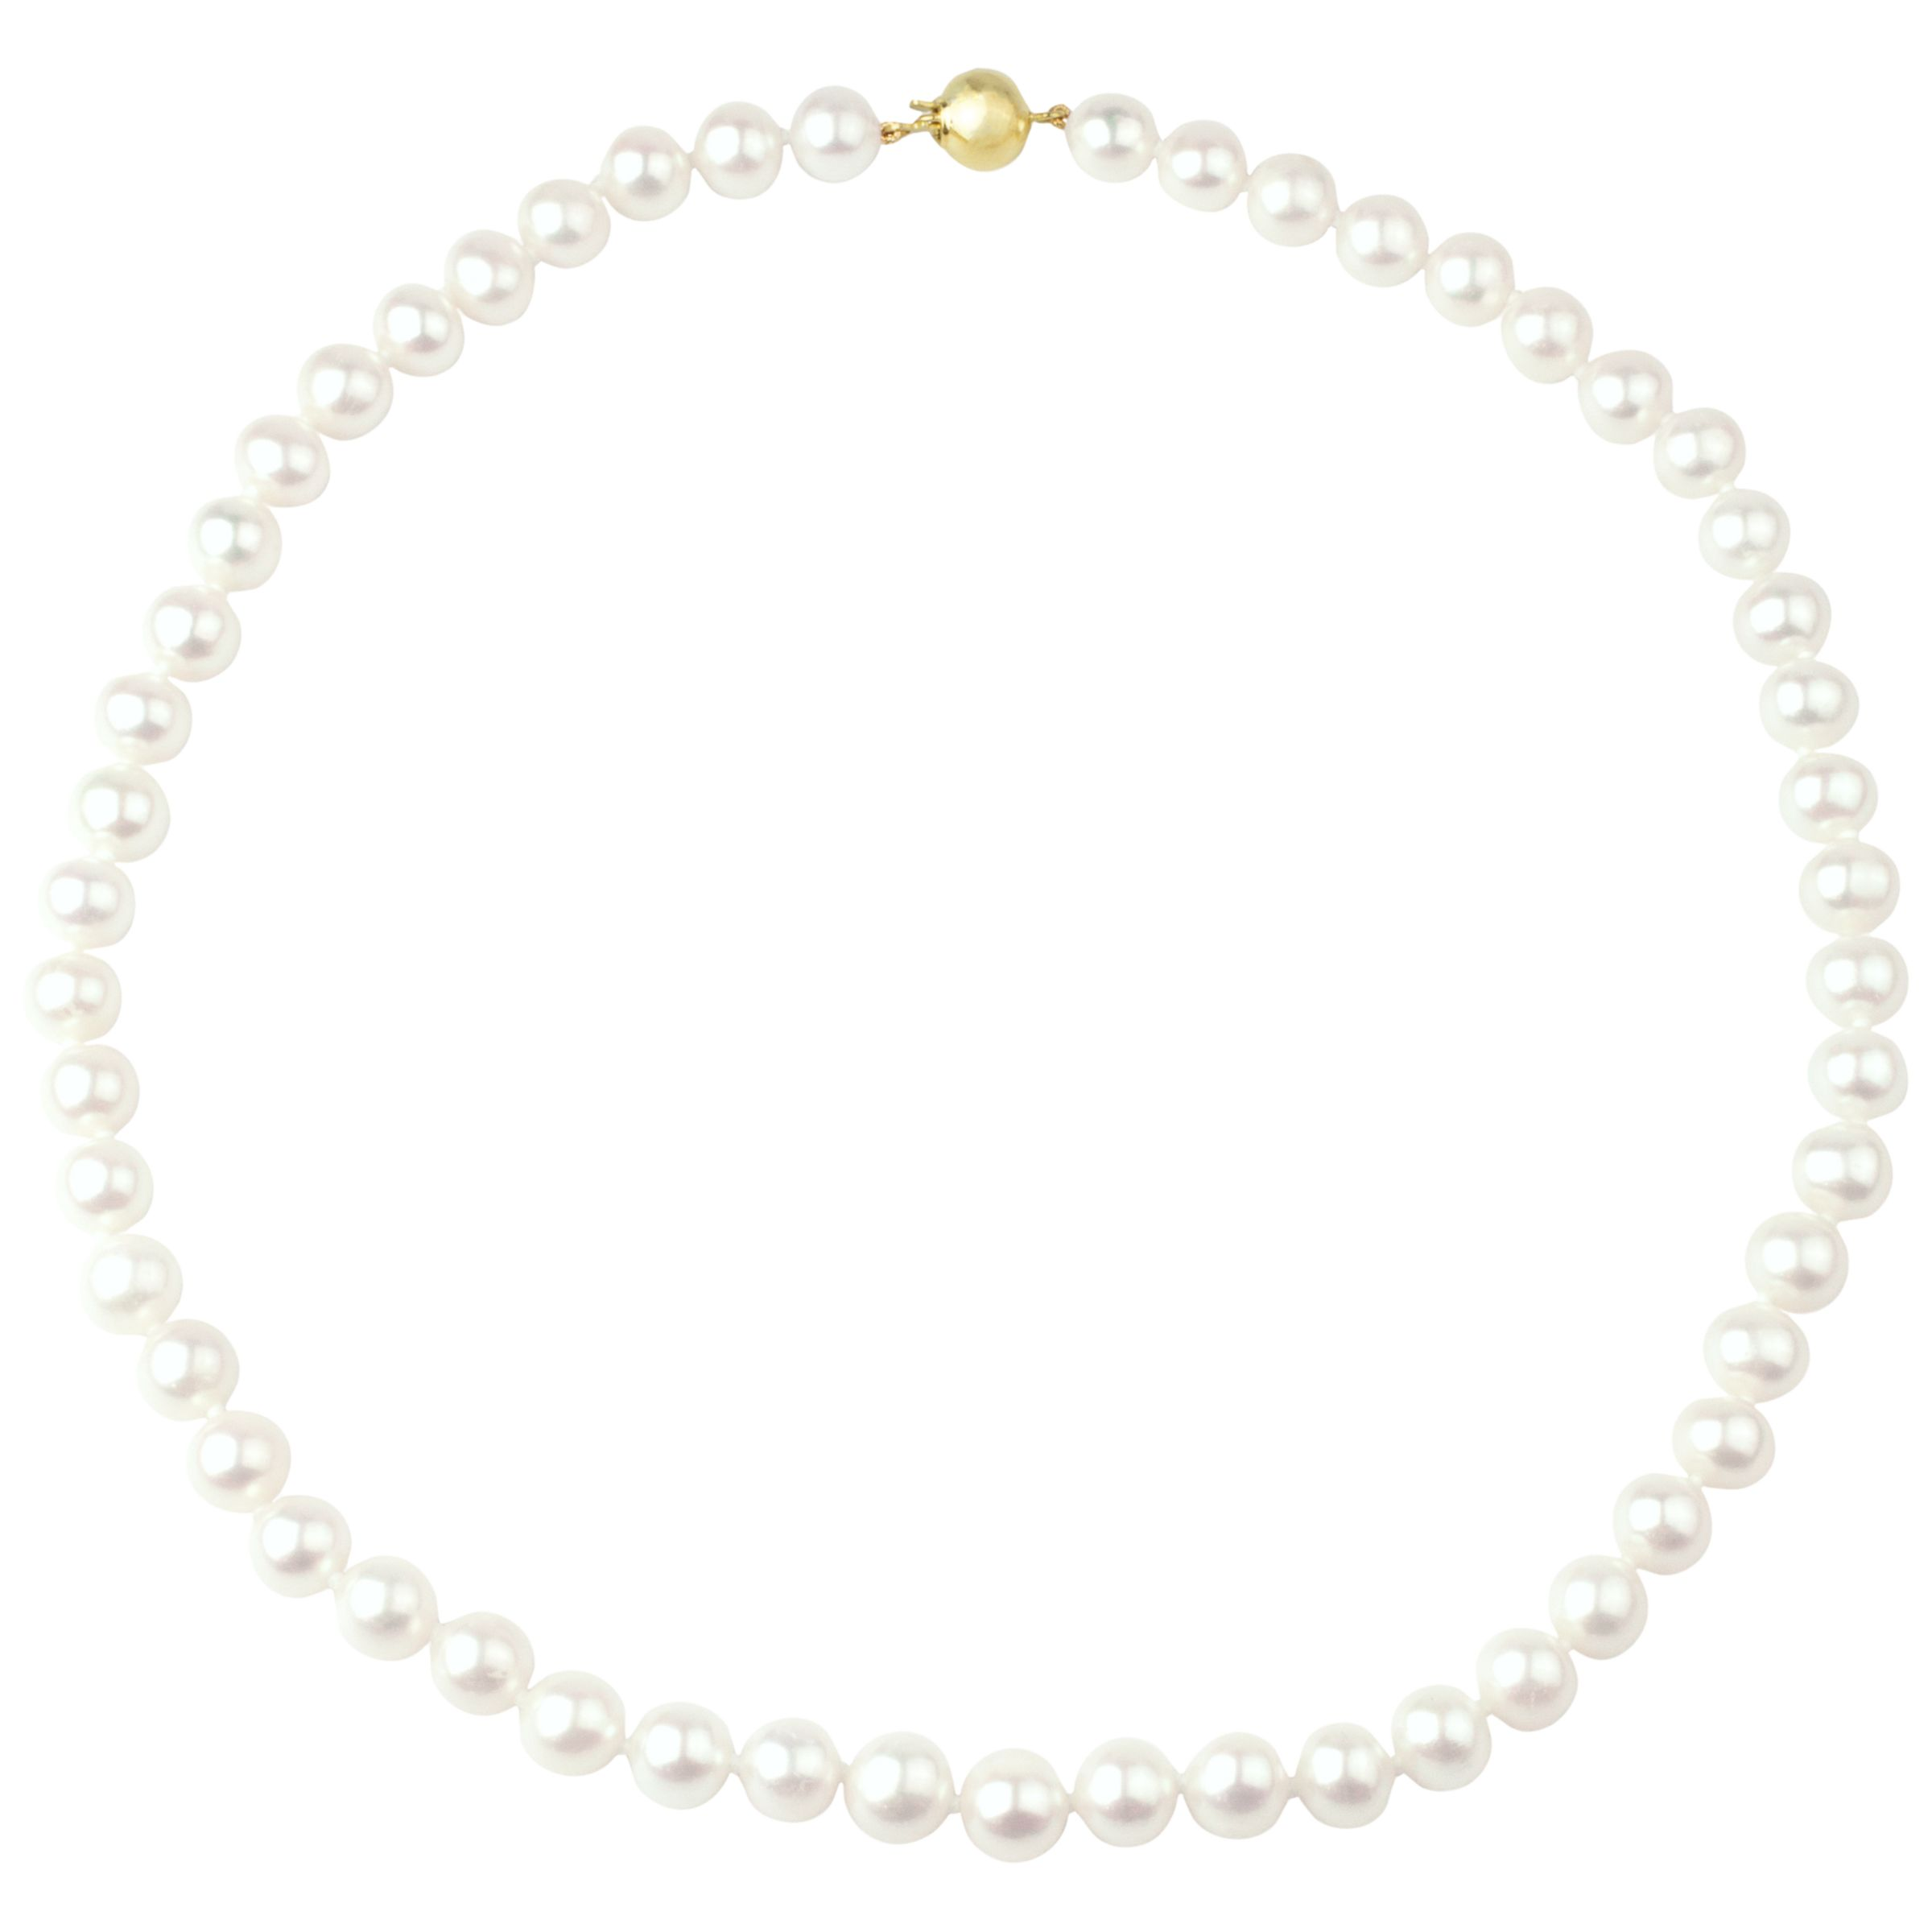 Freshwater Lustre Pearls Knotted 16